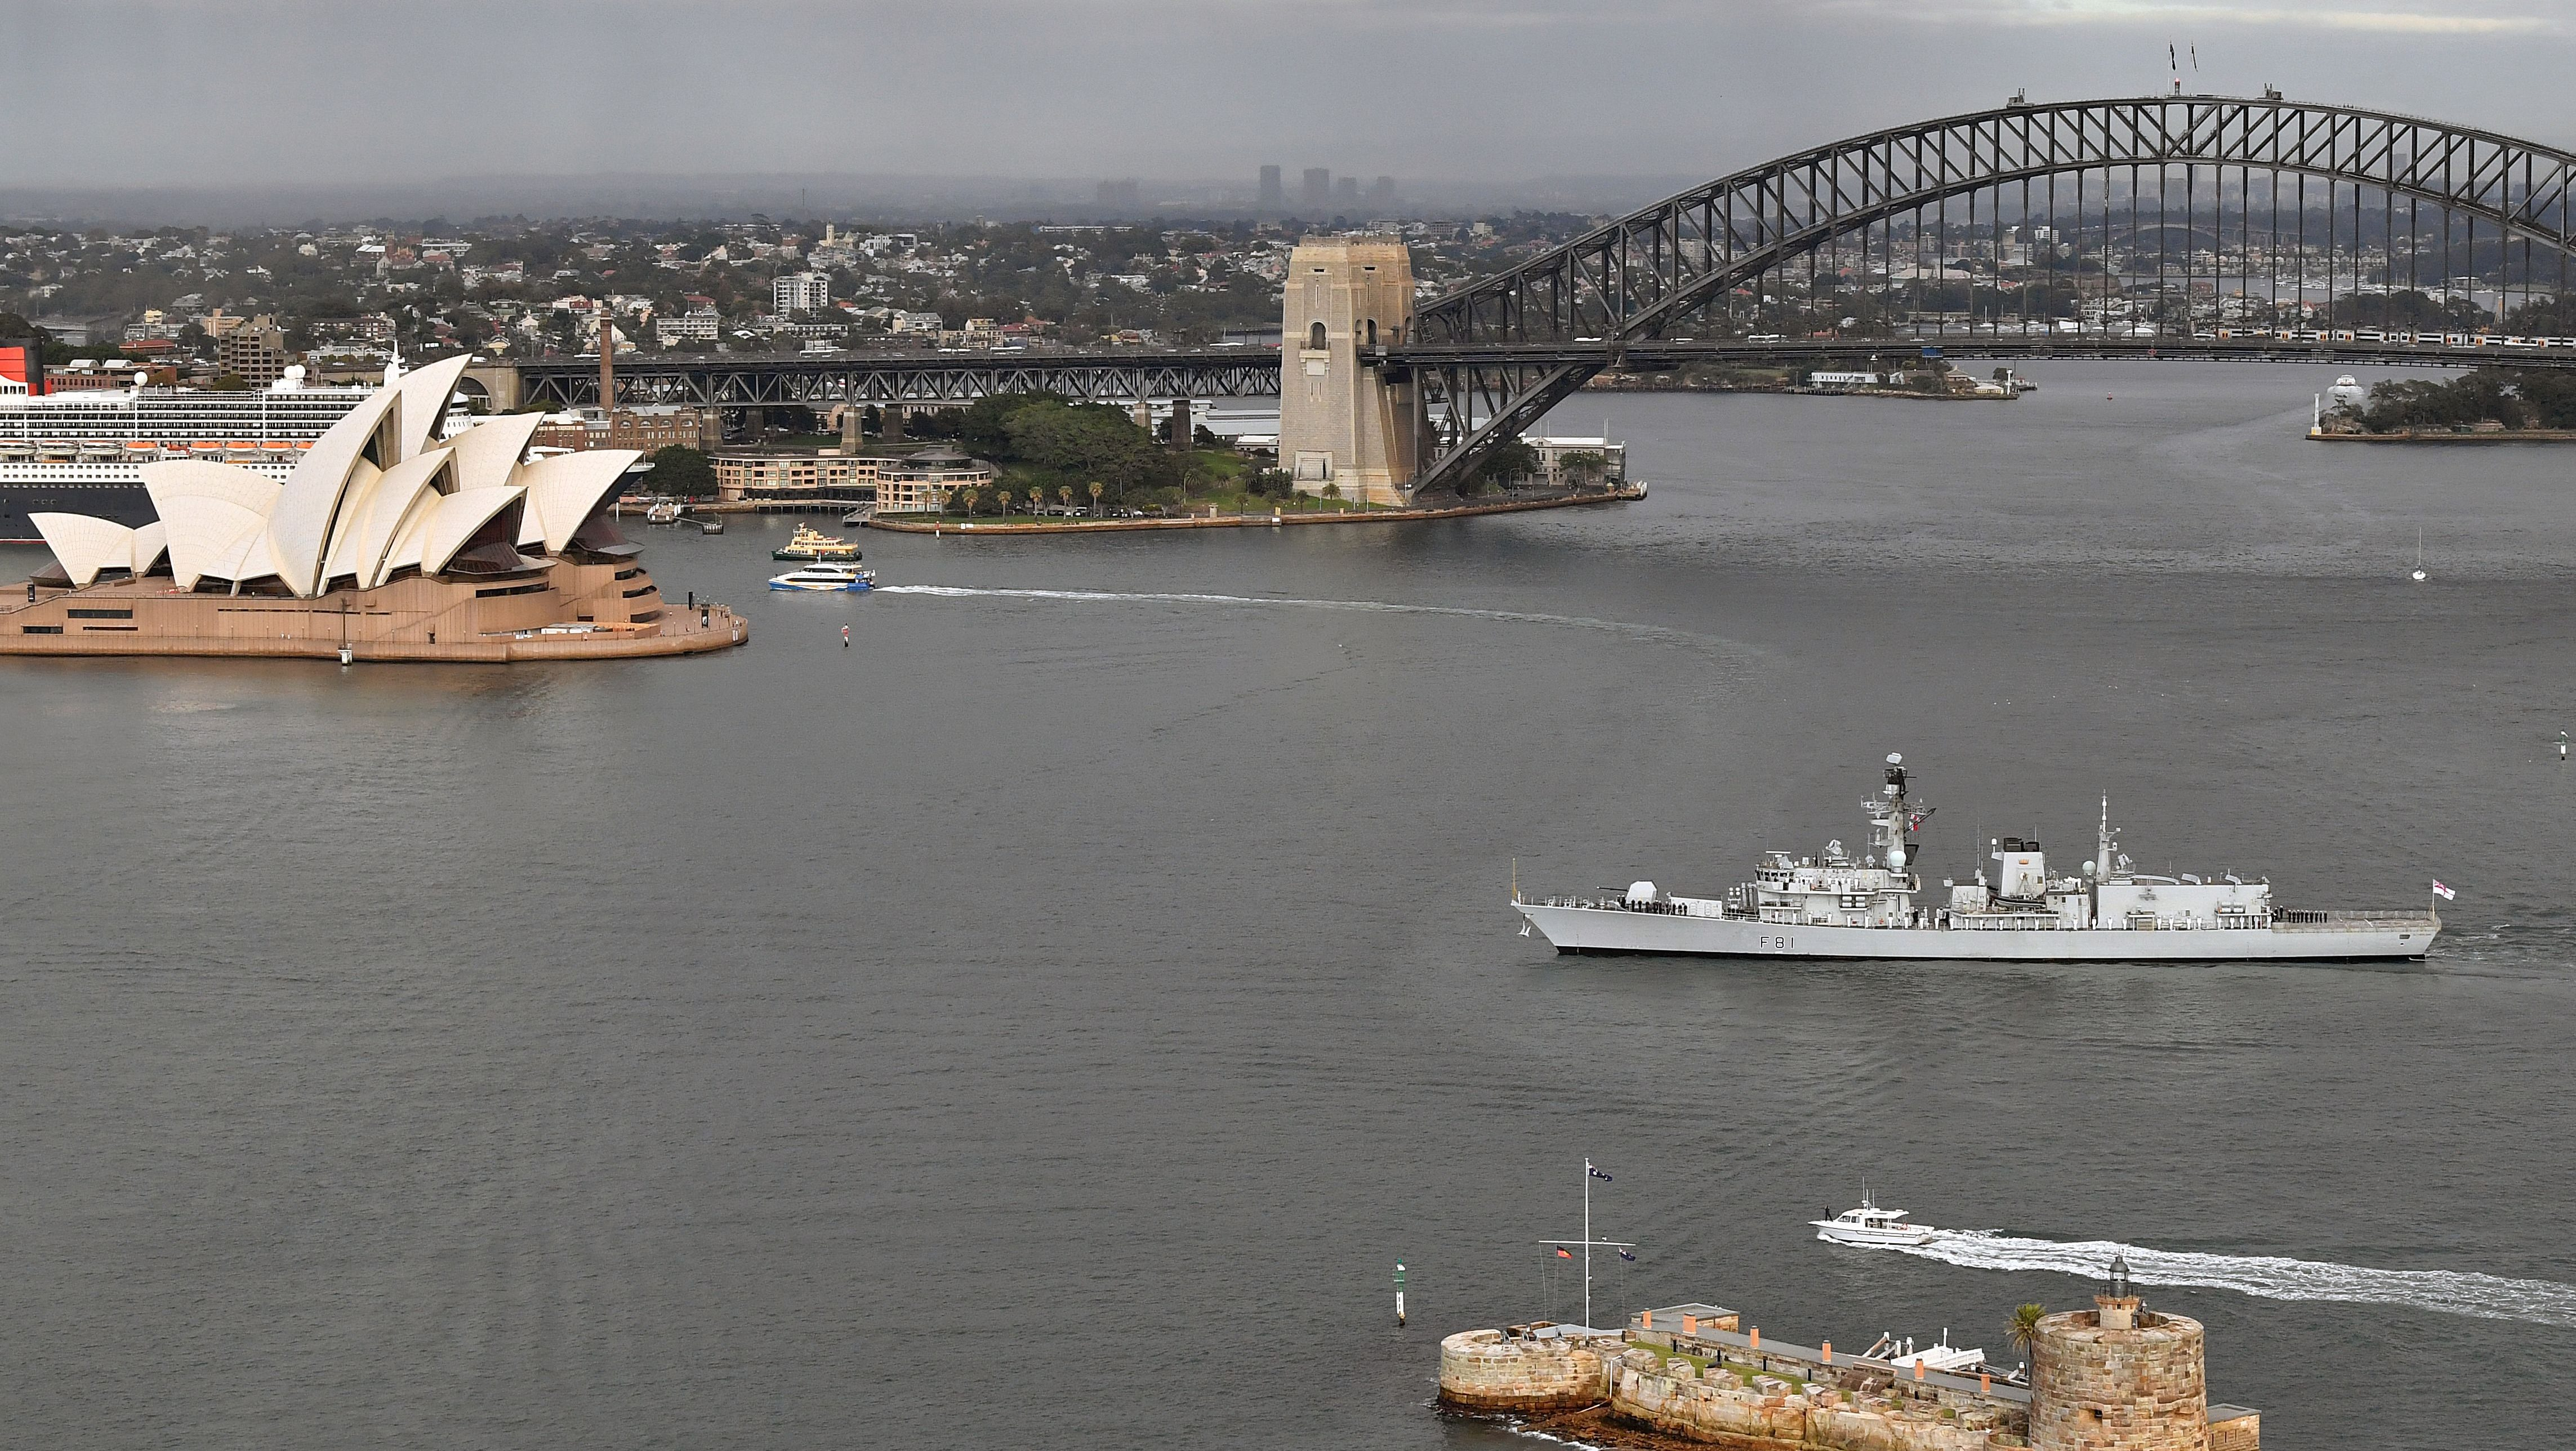 An aerial view of the British Royal Navy Type 23 frigate HMS Sutherland arriving in Sydney, Australia, 09 March 2018. The HMS Sutherland arrived in Sydney after participating in a five-day training exercise with the Royal Australian Navy.